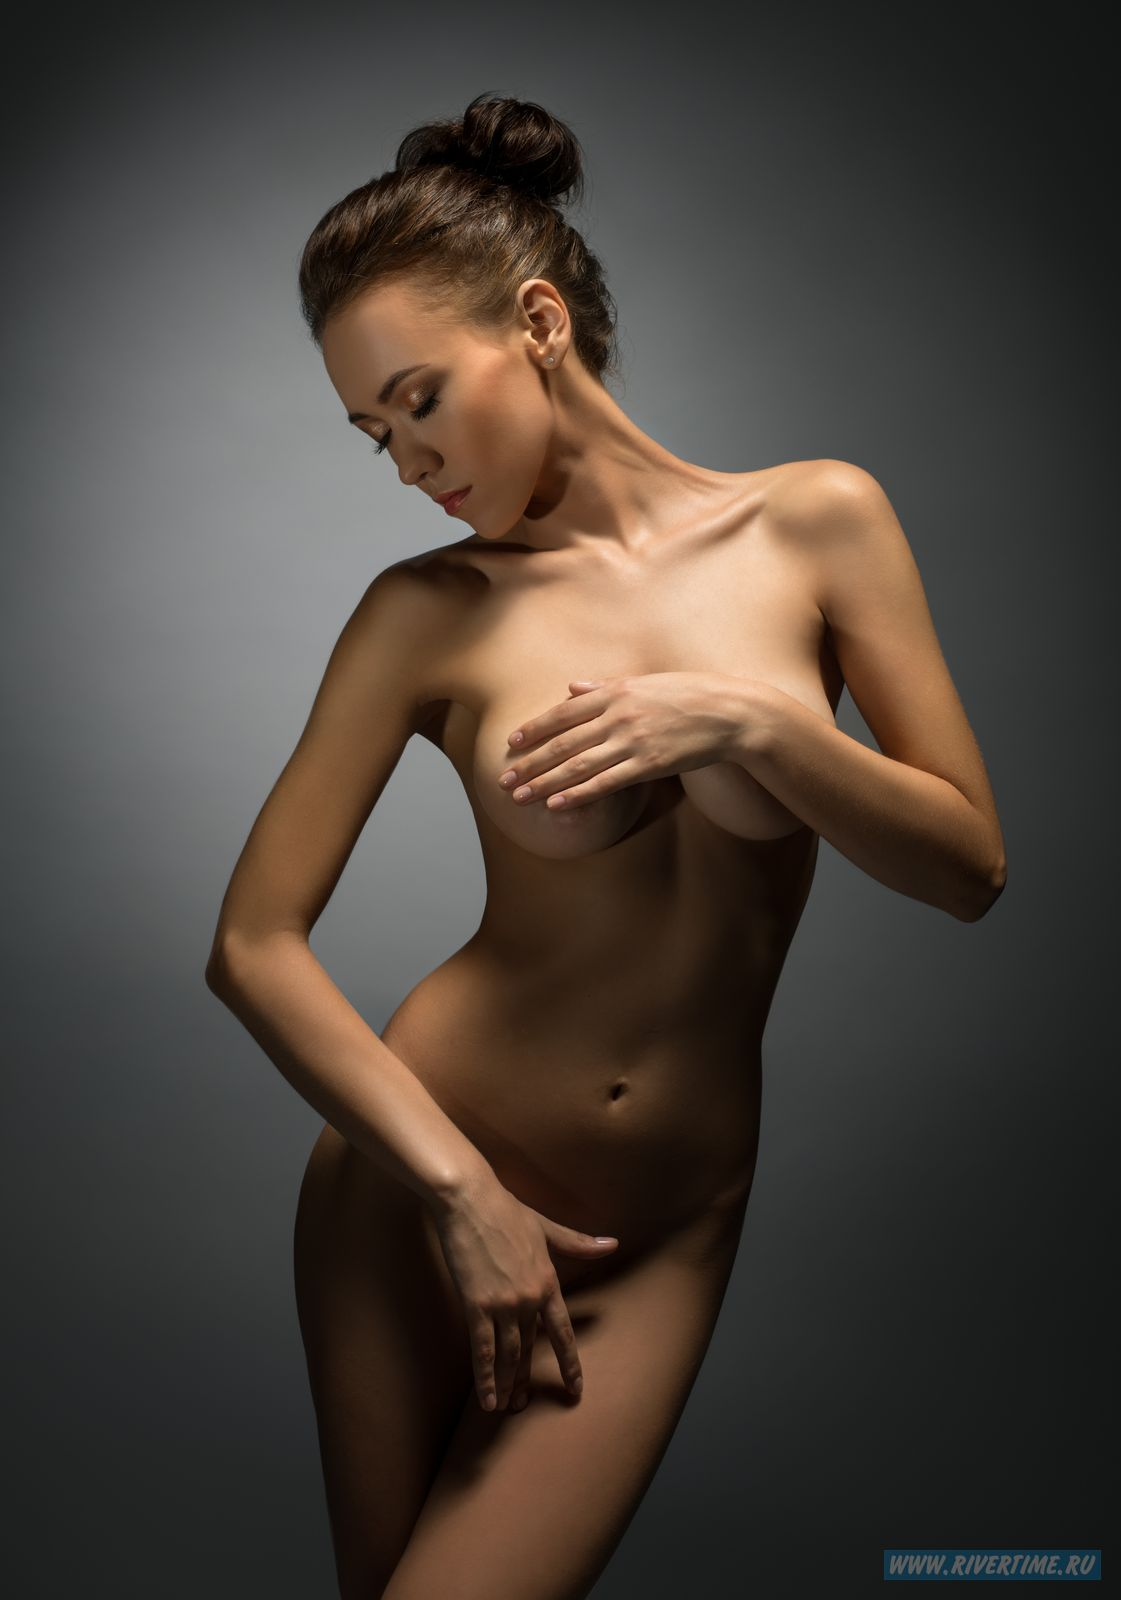 Charming beauty posing naked in studio